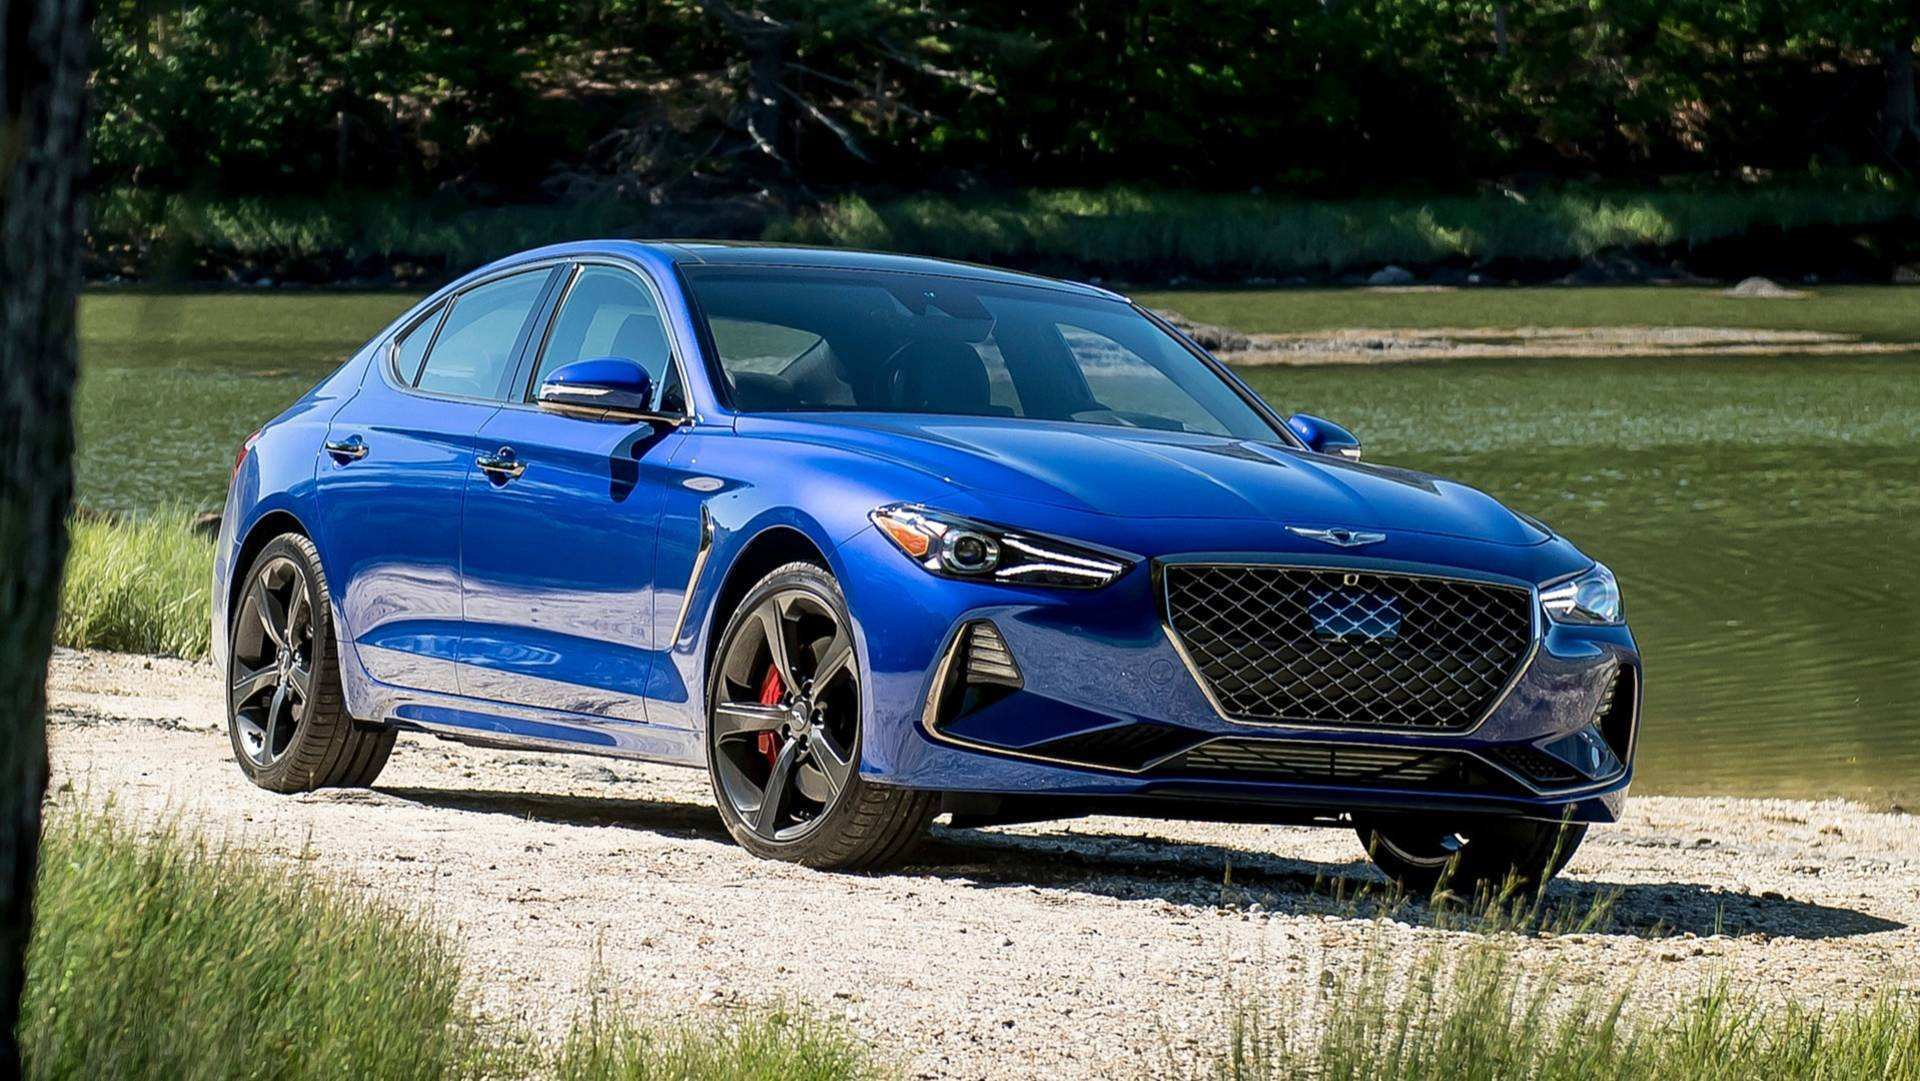 98 Concept of 2019 Genesis G70 Specs Exterior and Interior by 2019 Genesis G70 Specs